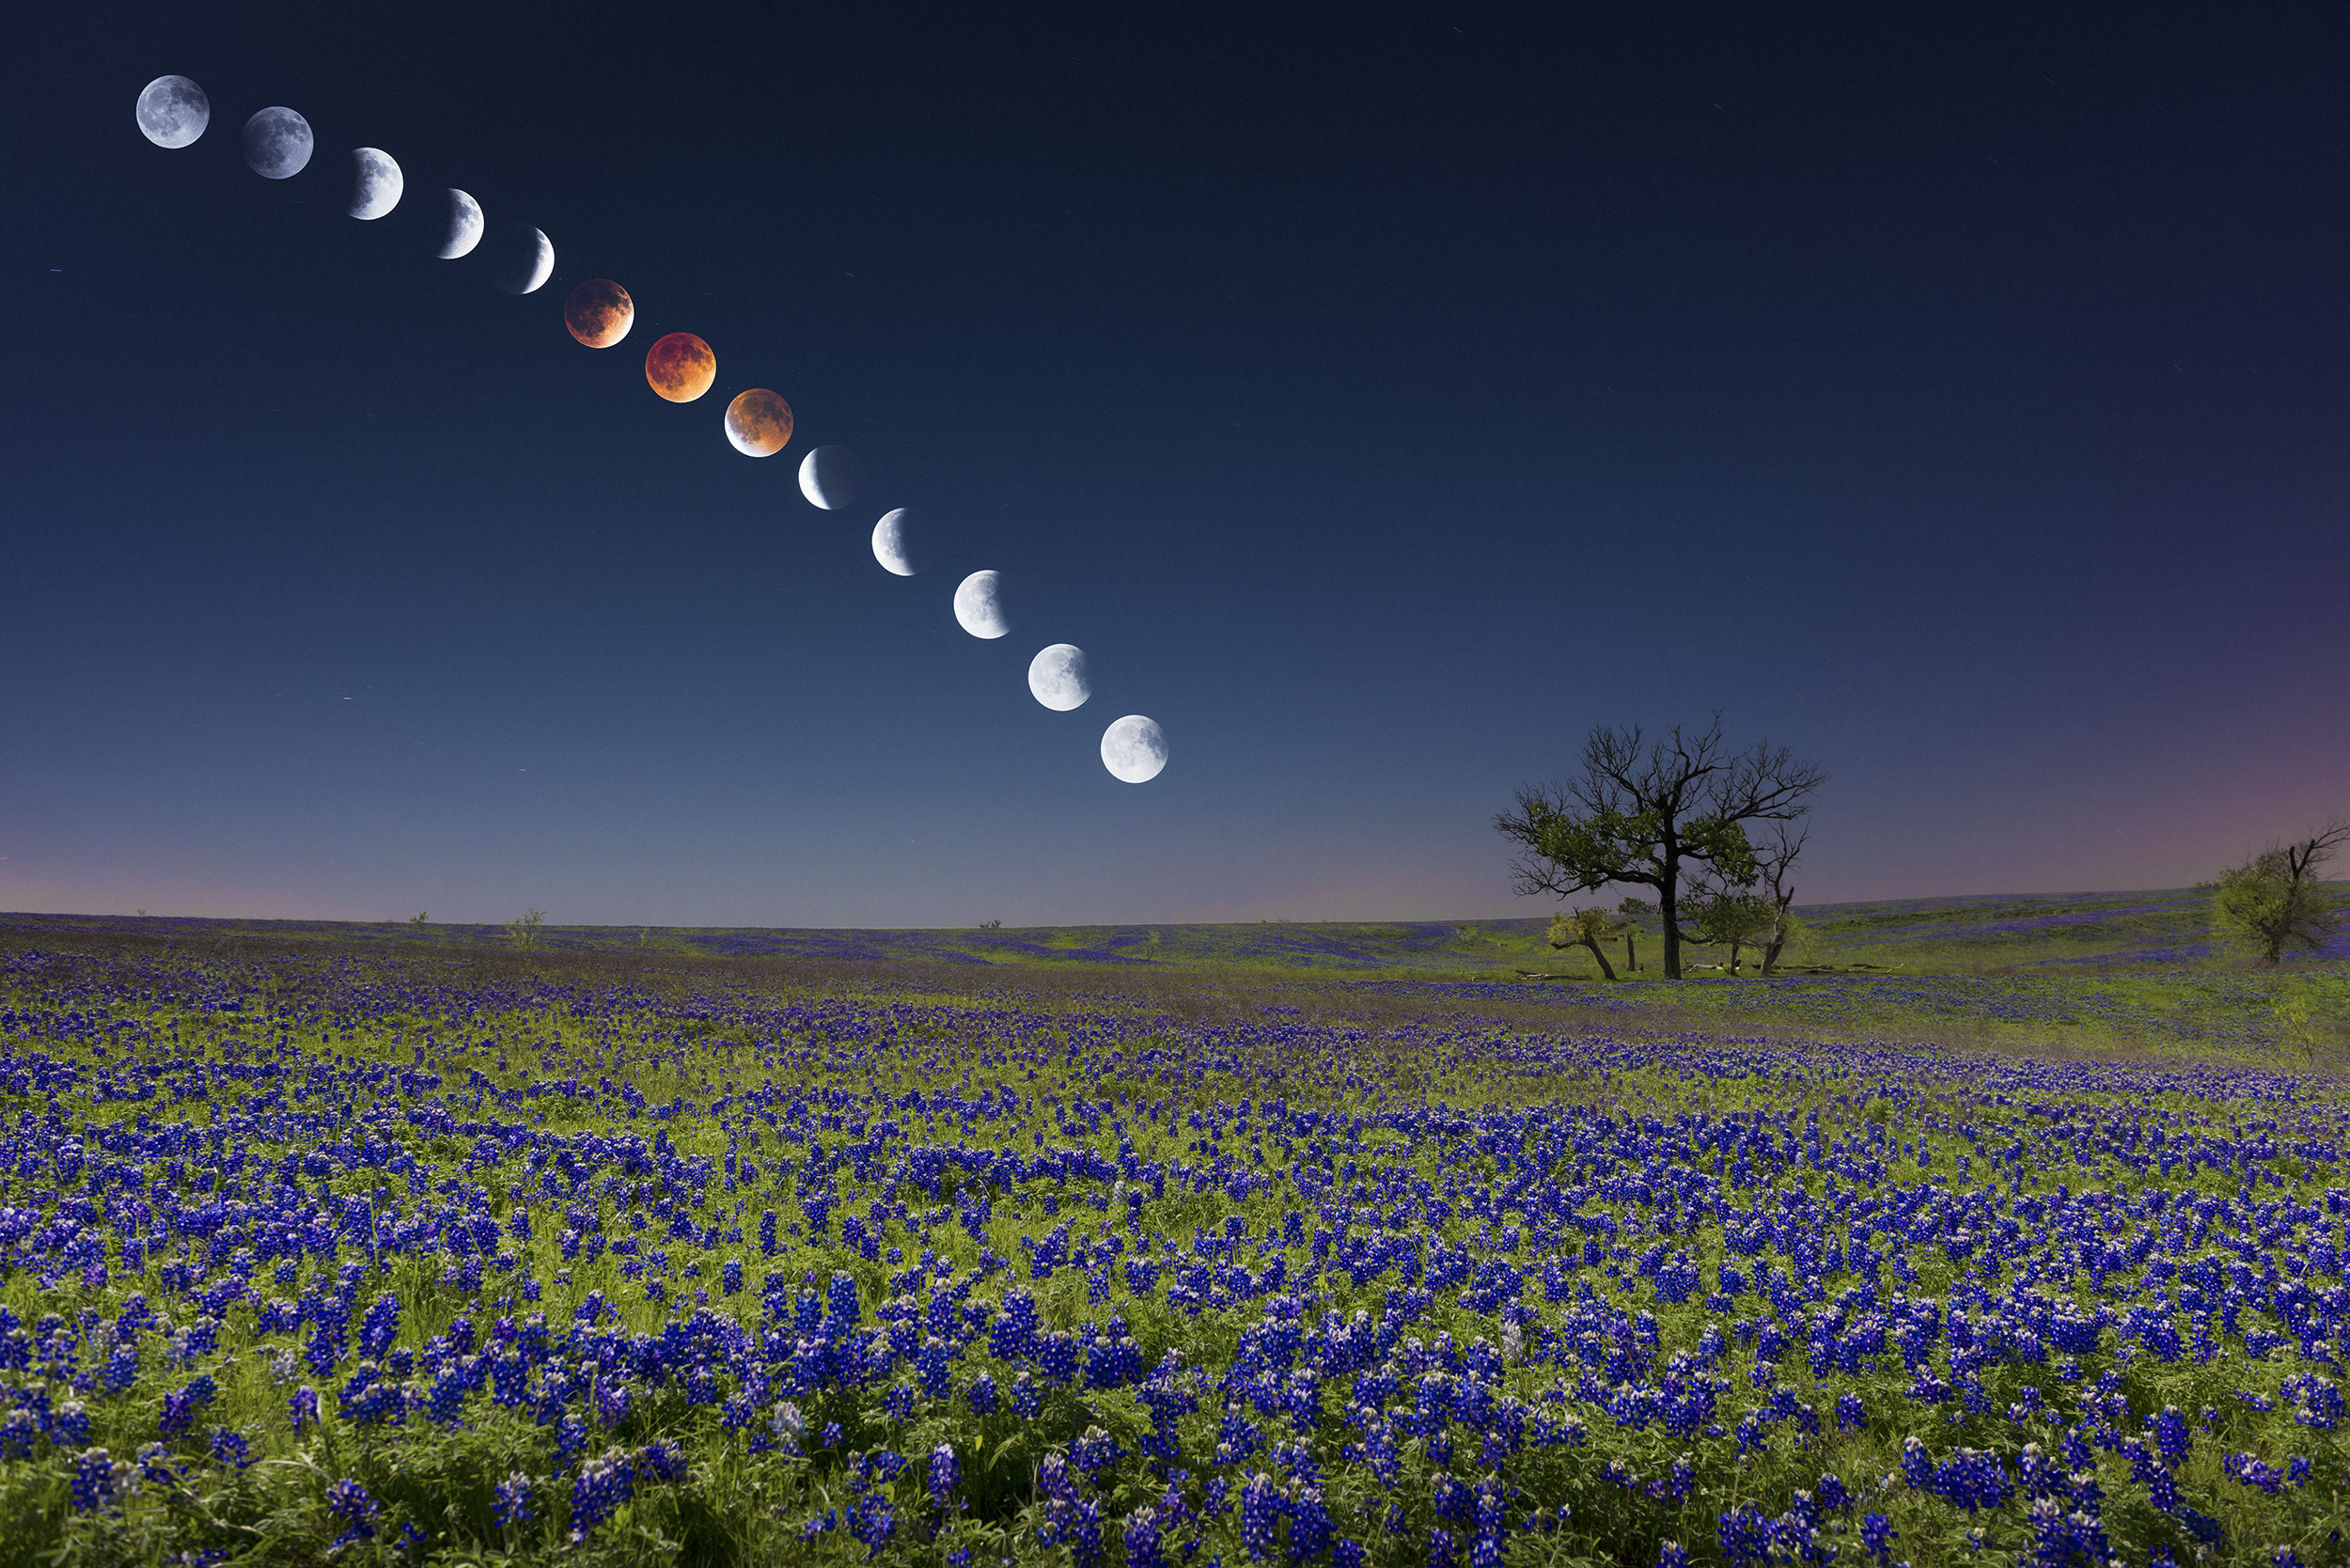 How I got the shot: Capturing the lunar eclipse